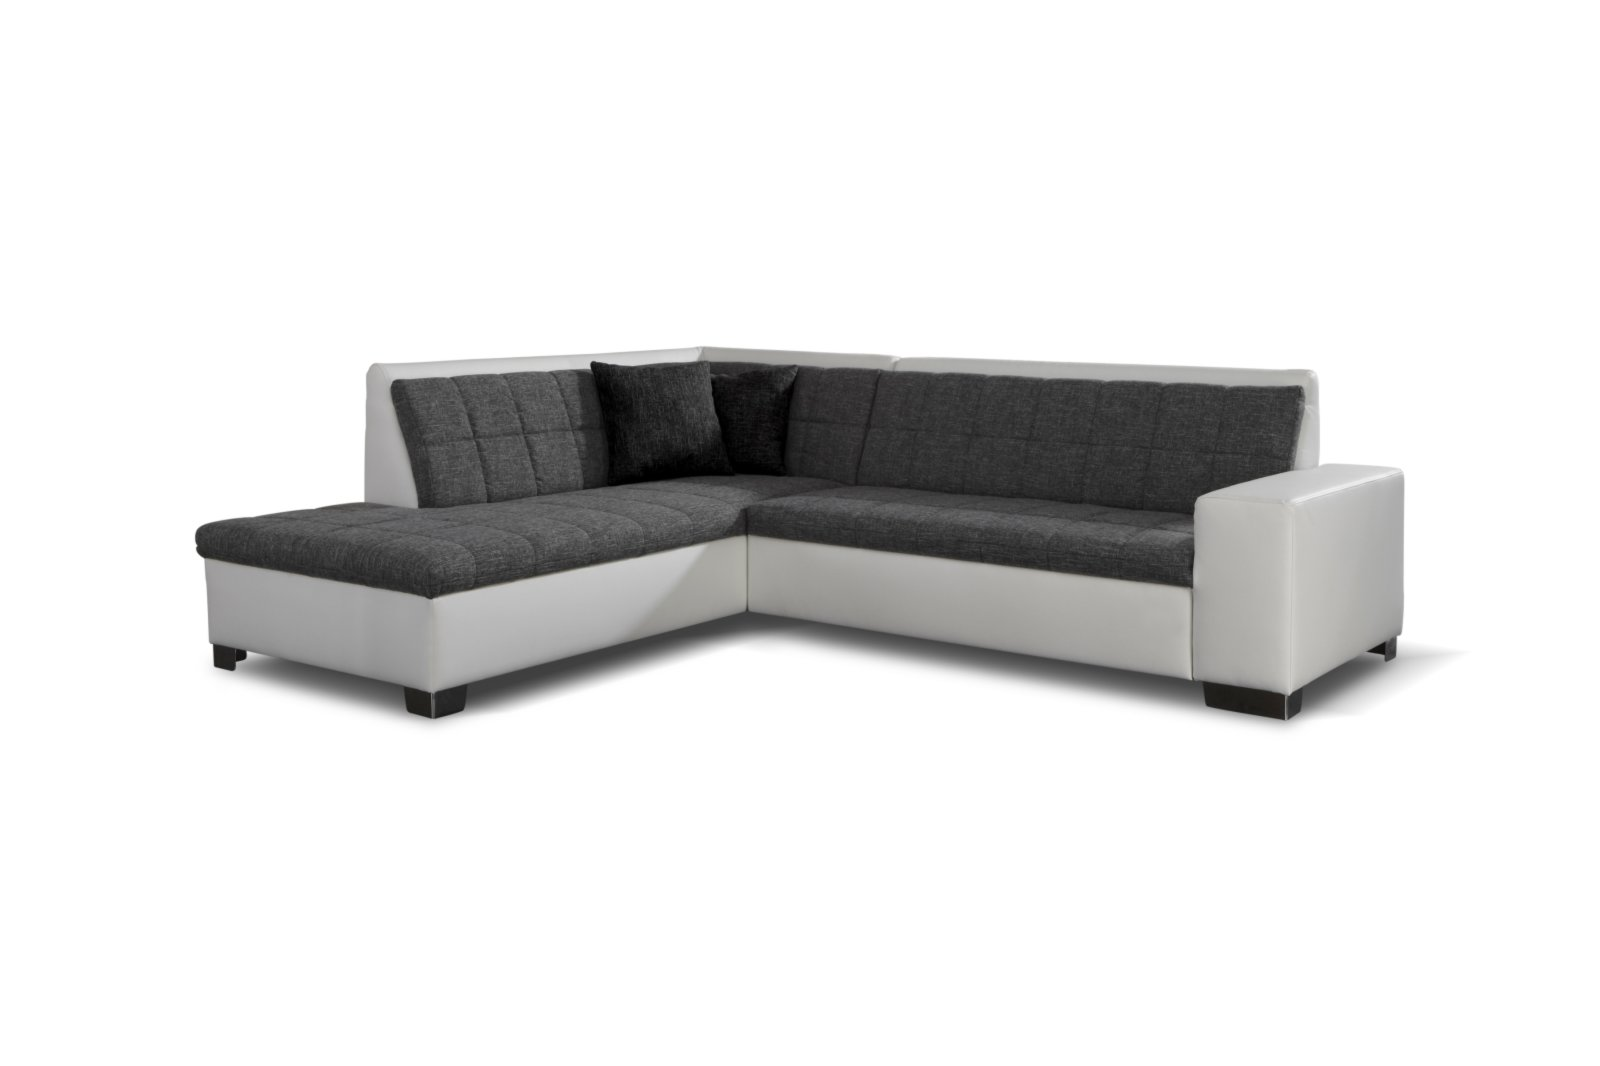 Polsterecke grau wei ottomane links ecksofas l form for Sofa l form grau